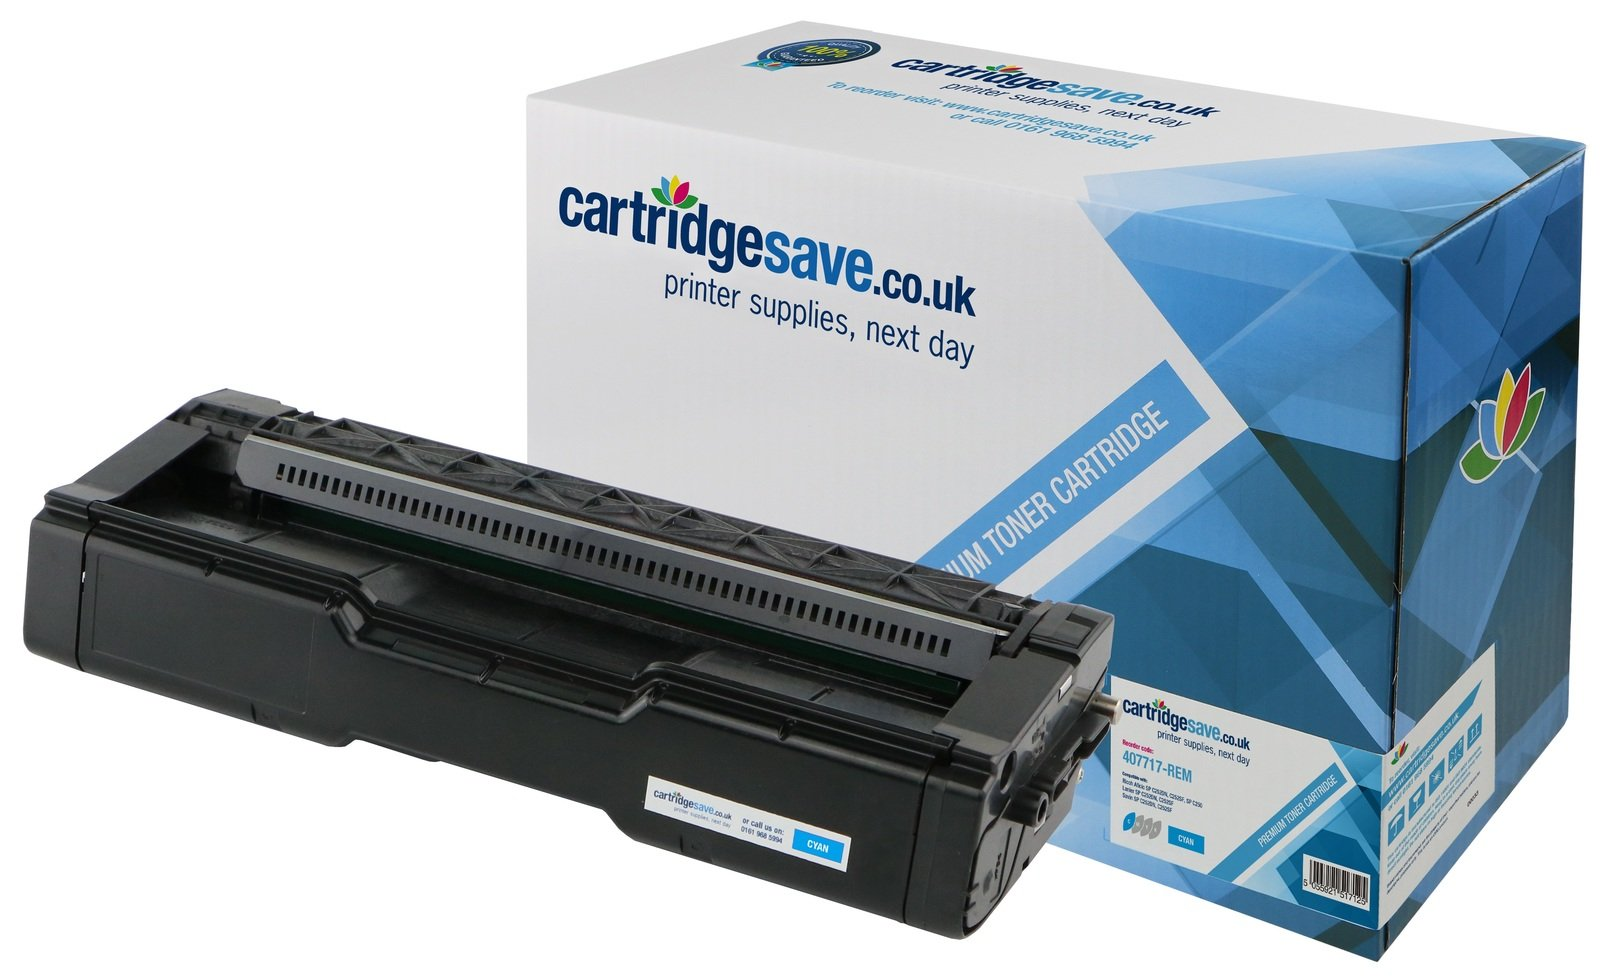 Compatible Cyan Ricoh 407717 Laser Toner (Replaces Ricoh 407717 Laser Printer Cartridge)